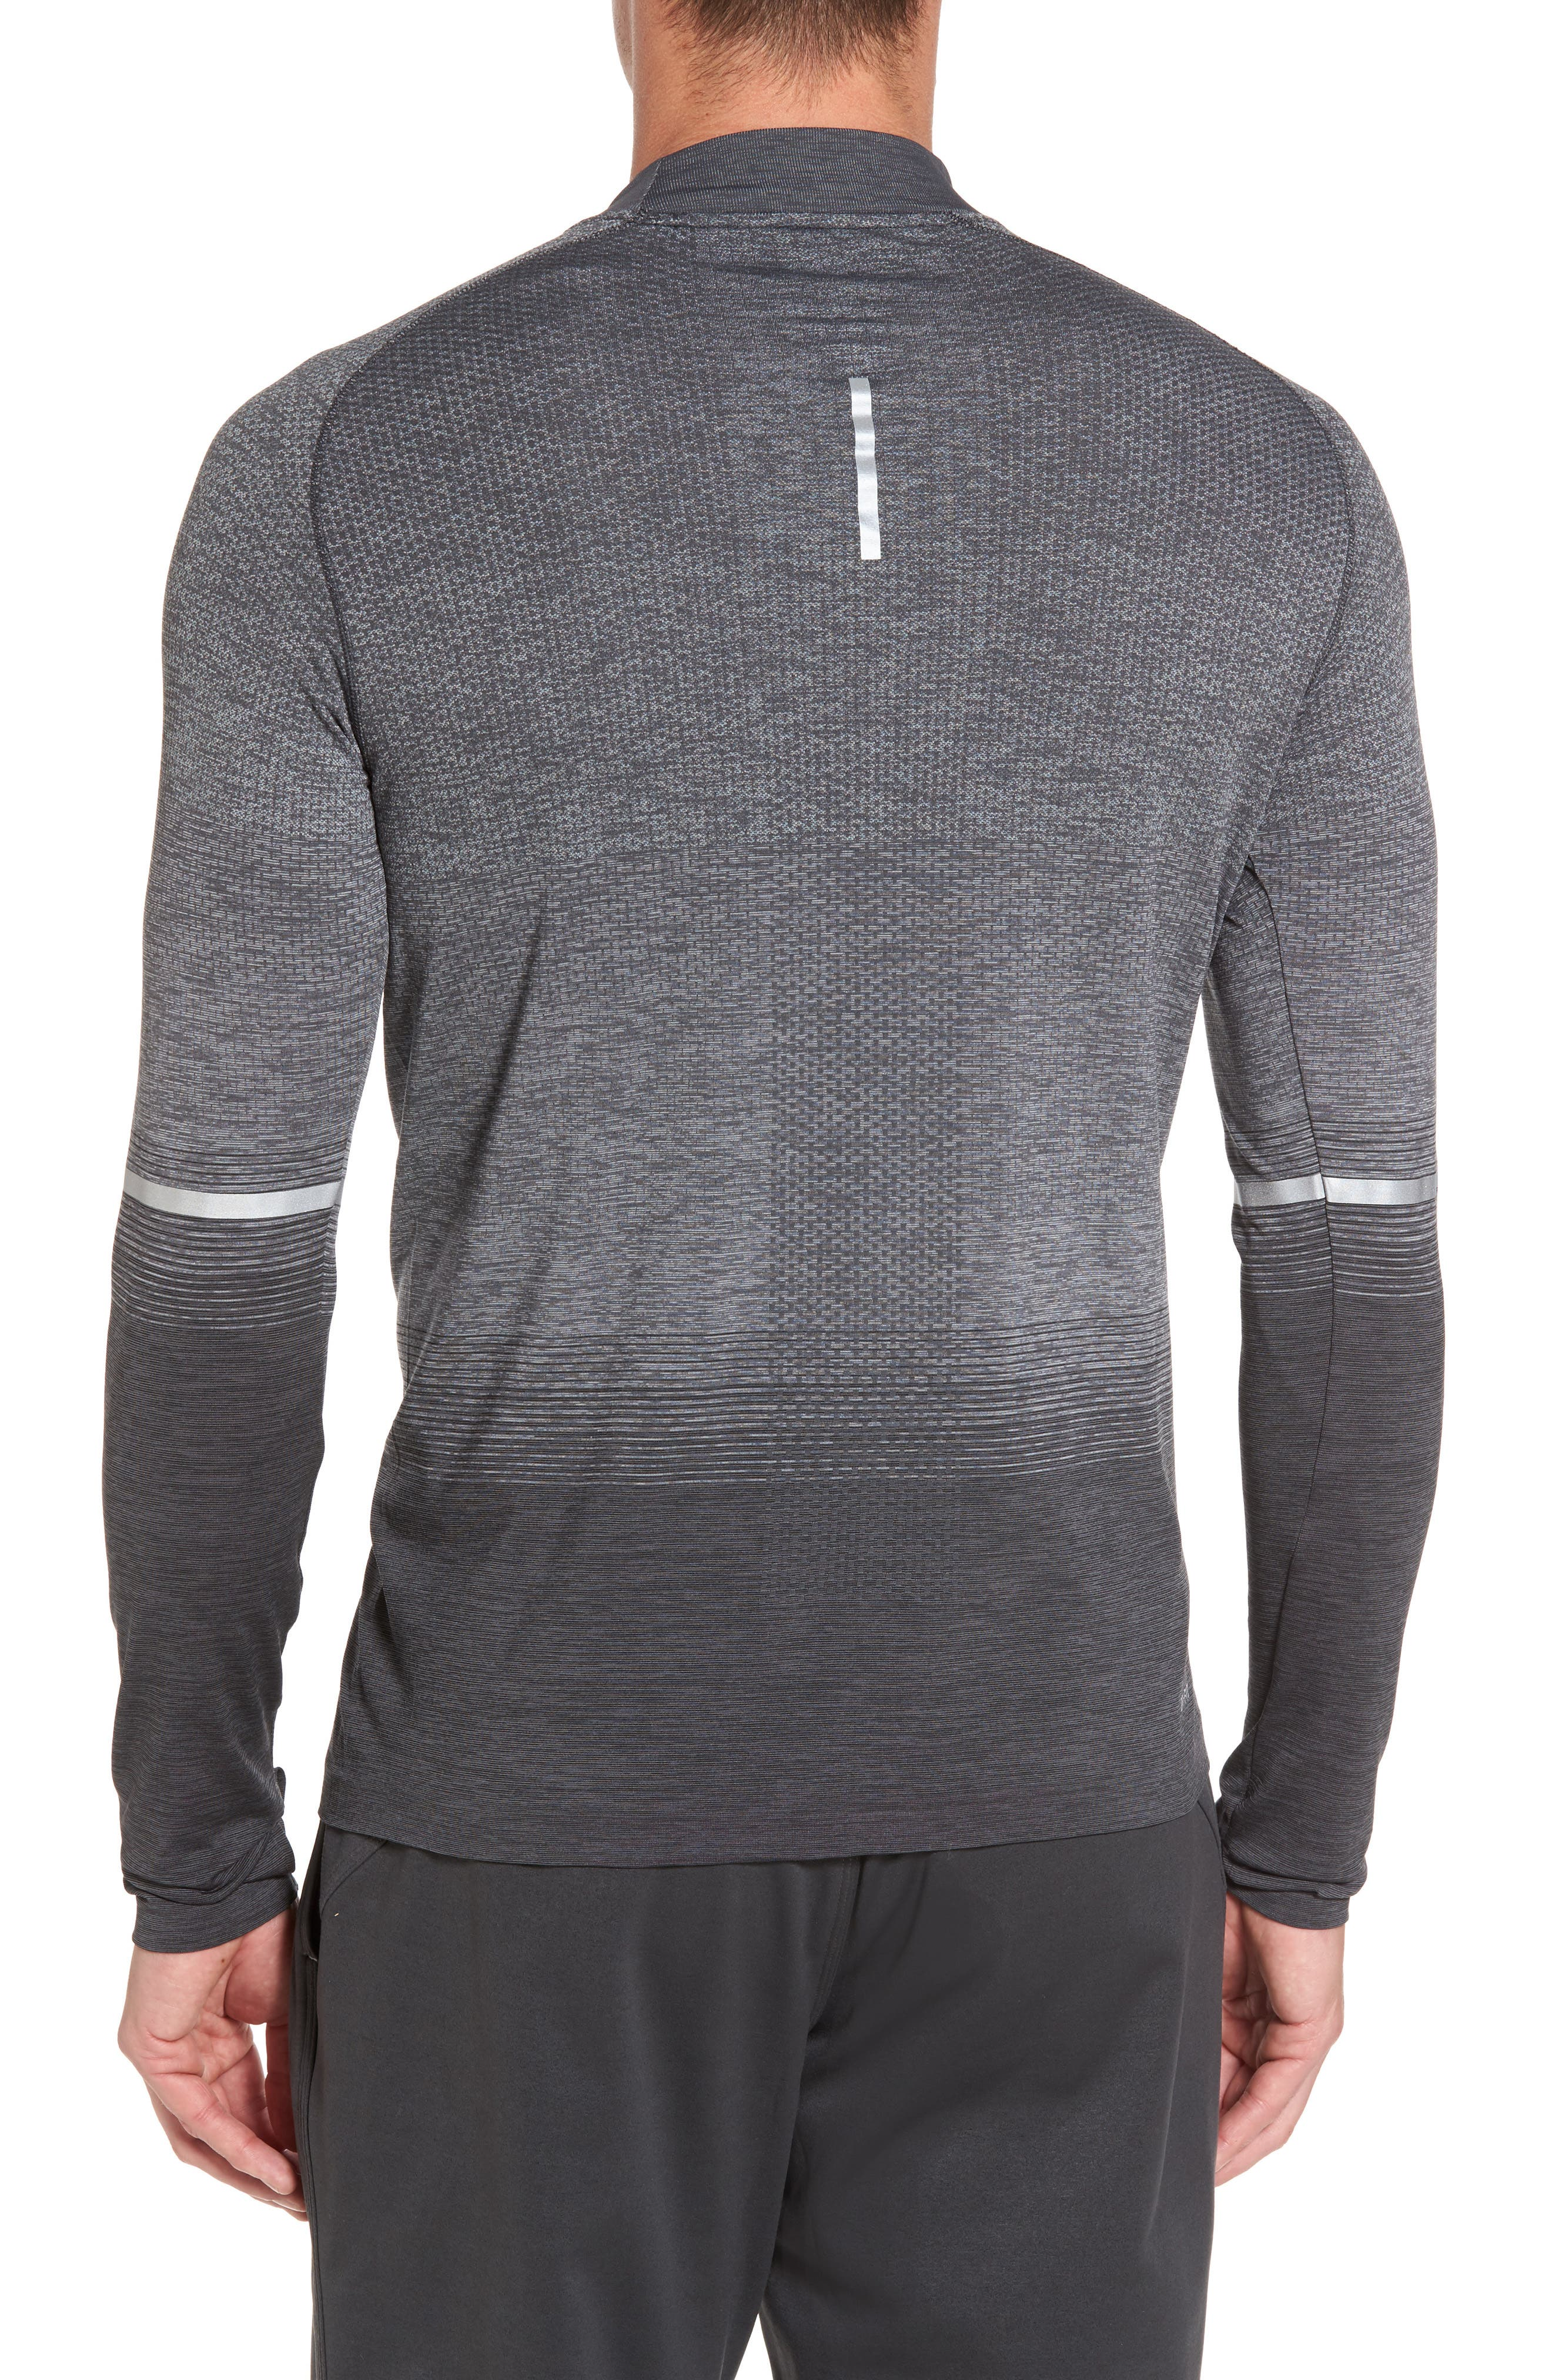 Dry Running Mock Neck Long Sleeve T-Shirt,                             Alternate thumbnail 2, color,                             ANTHRACITE/ WOLF GREY/ GREY